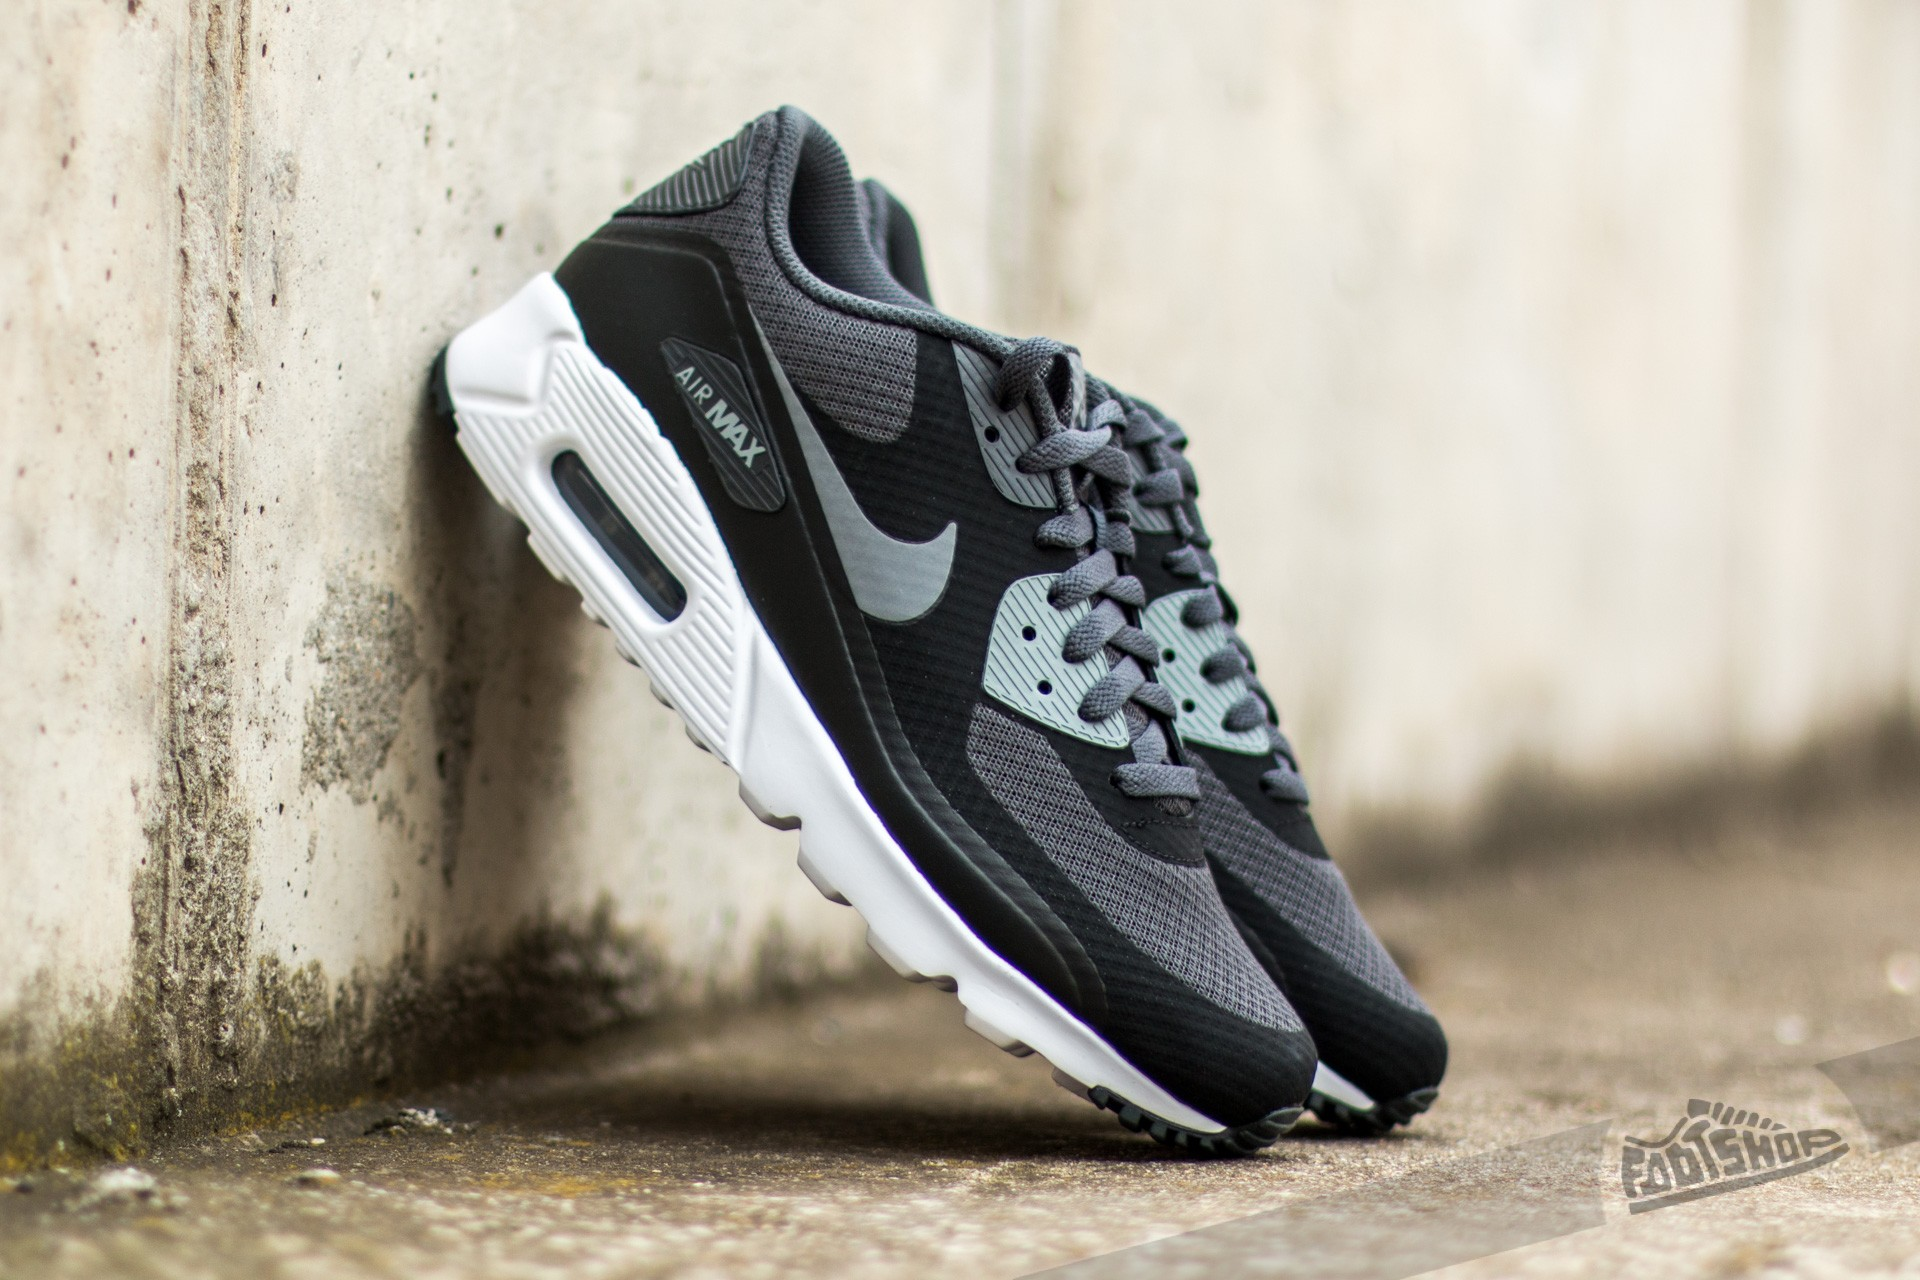 premium selection 31962 4ce07 Nike Air Max 90 Ultra Essential Black  Cool Grey-Anthracite-White